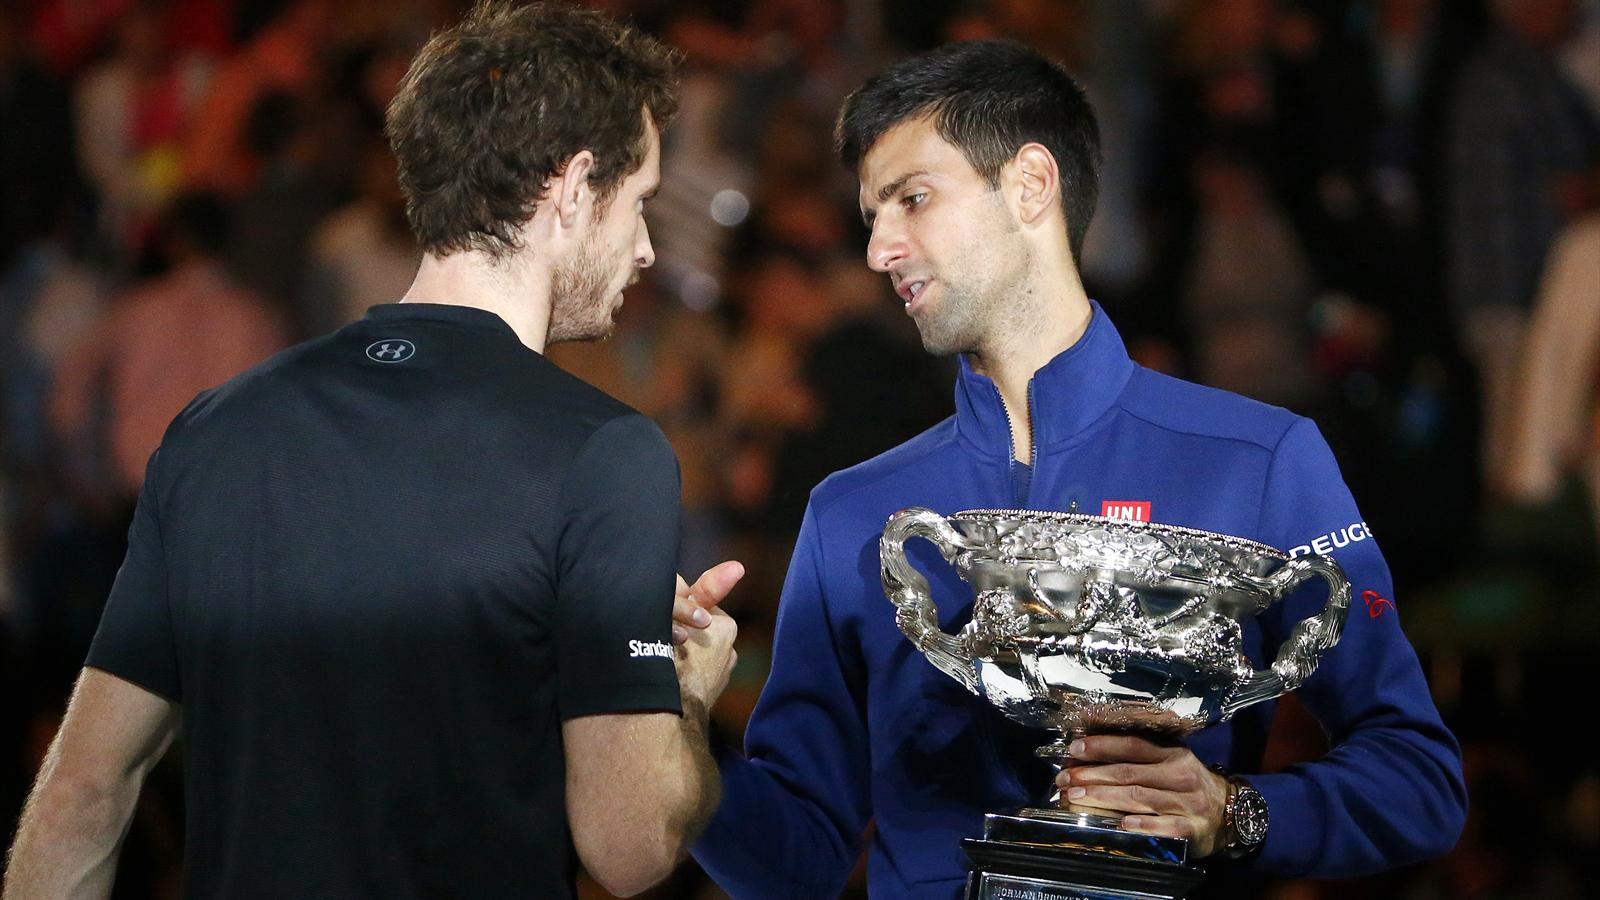 Serbia's Novak Djokovic (R) shakes hands with Britain's Andy Murray while holding the men's singles trophy after winning their final match at the Australian Open